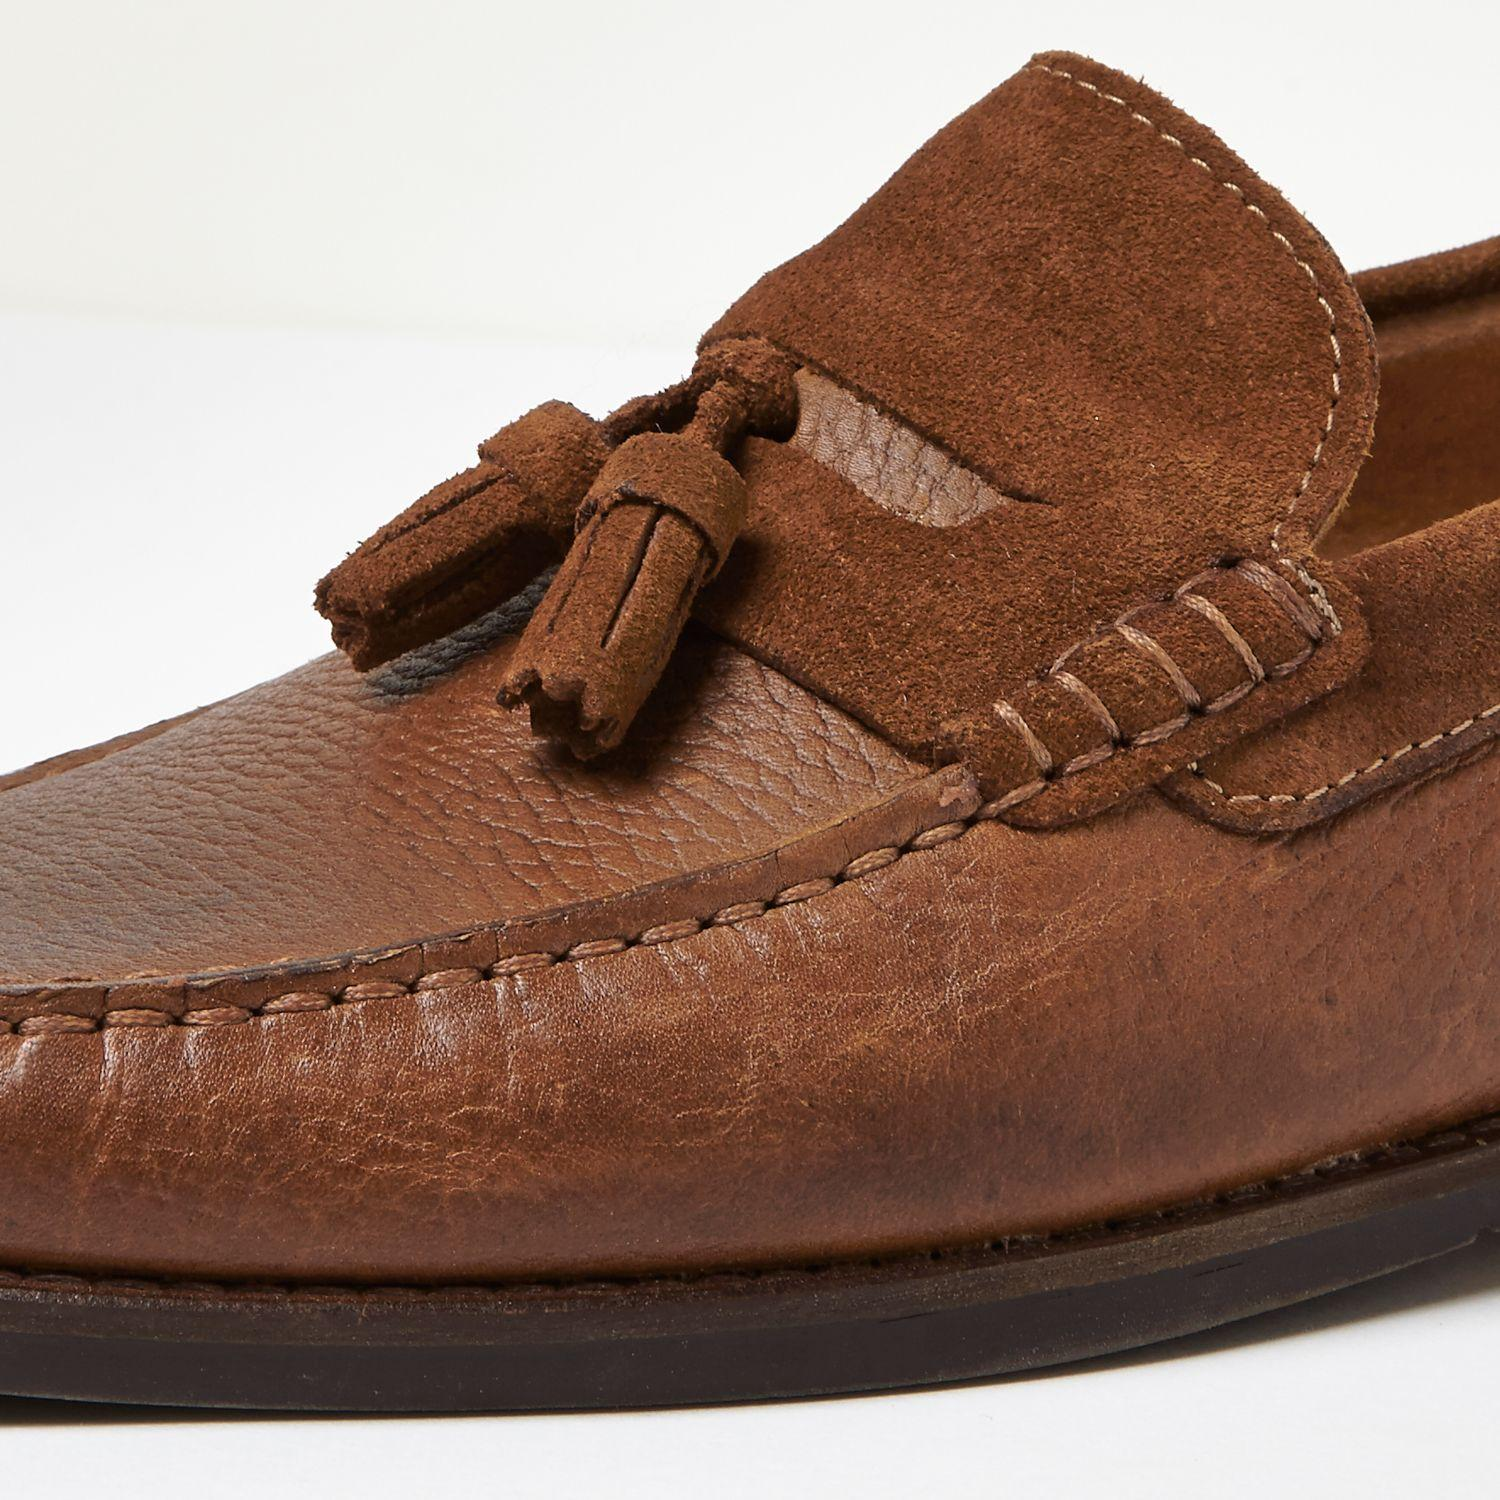 Sperry Audrey Cane Woven Leather Boat Shoes